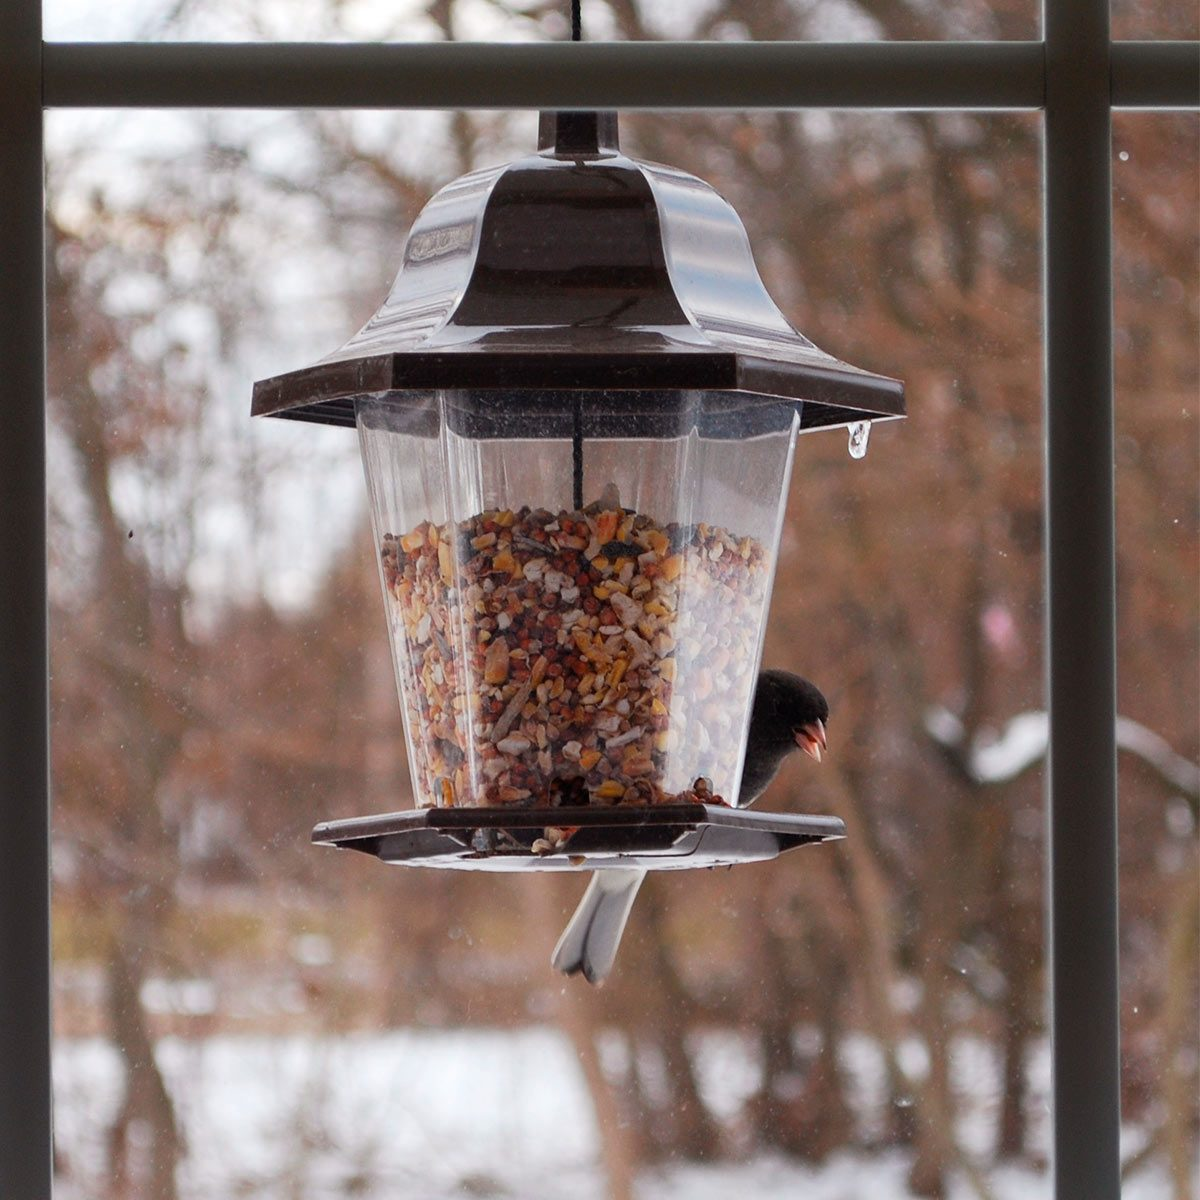 bird feeder close to window